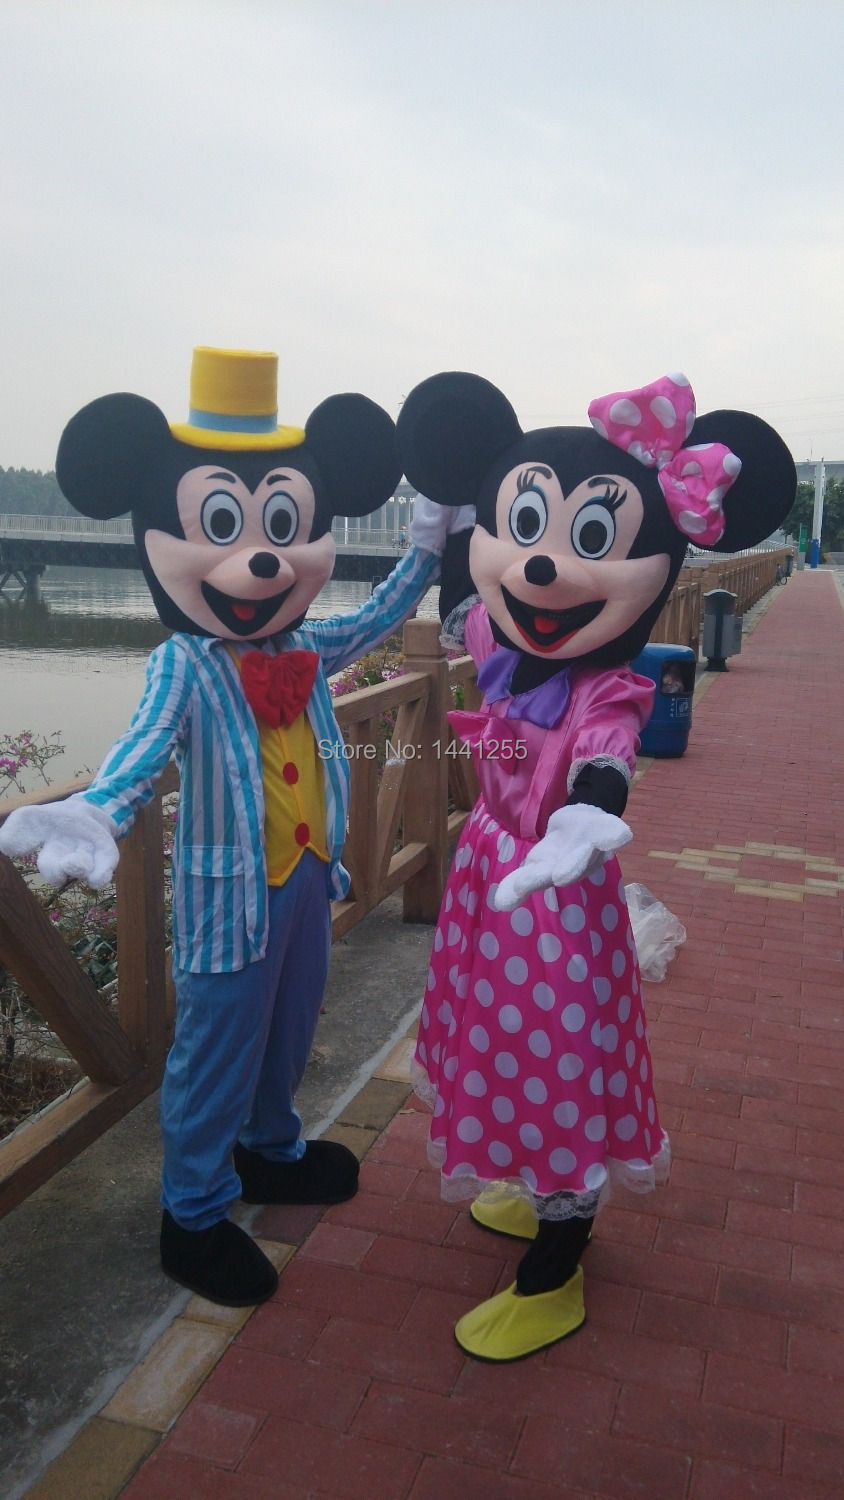 Pink Minnie Mouse Mascot costume and blue Mascot costume Adult size Mascot costume Fast shipping-in Anime Costumes from Novelty u0026 Special Use on ... & Pink Minnie Mouse Mascot costume and blue Mascot costume Adult size ...